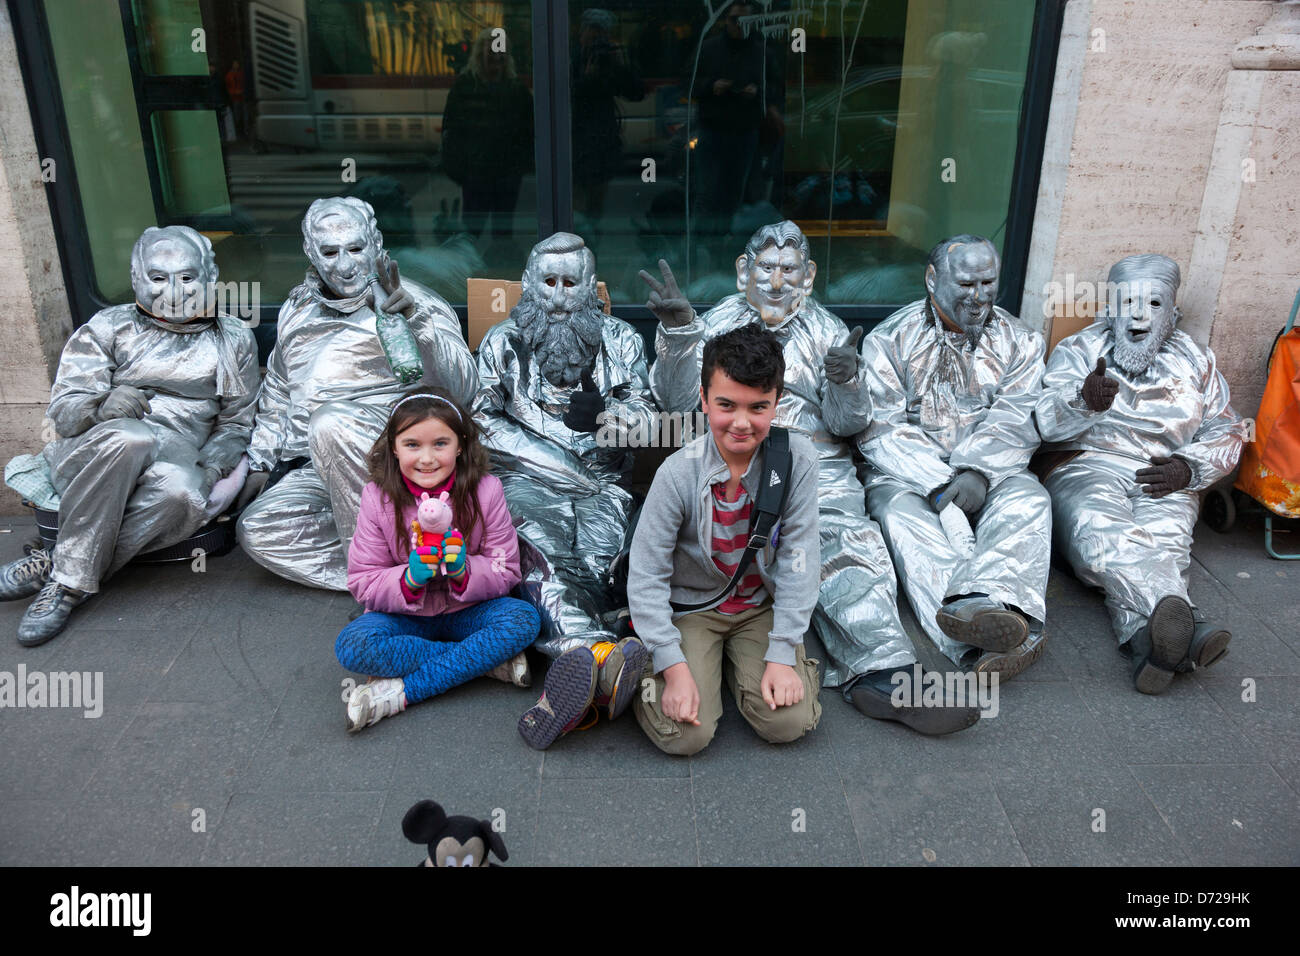 Leon and Maria with street mime artists in Rome - Stock Image